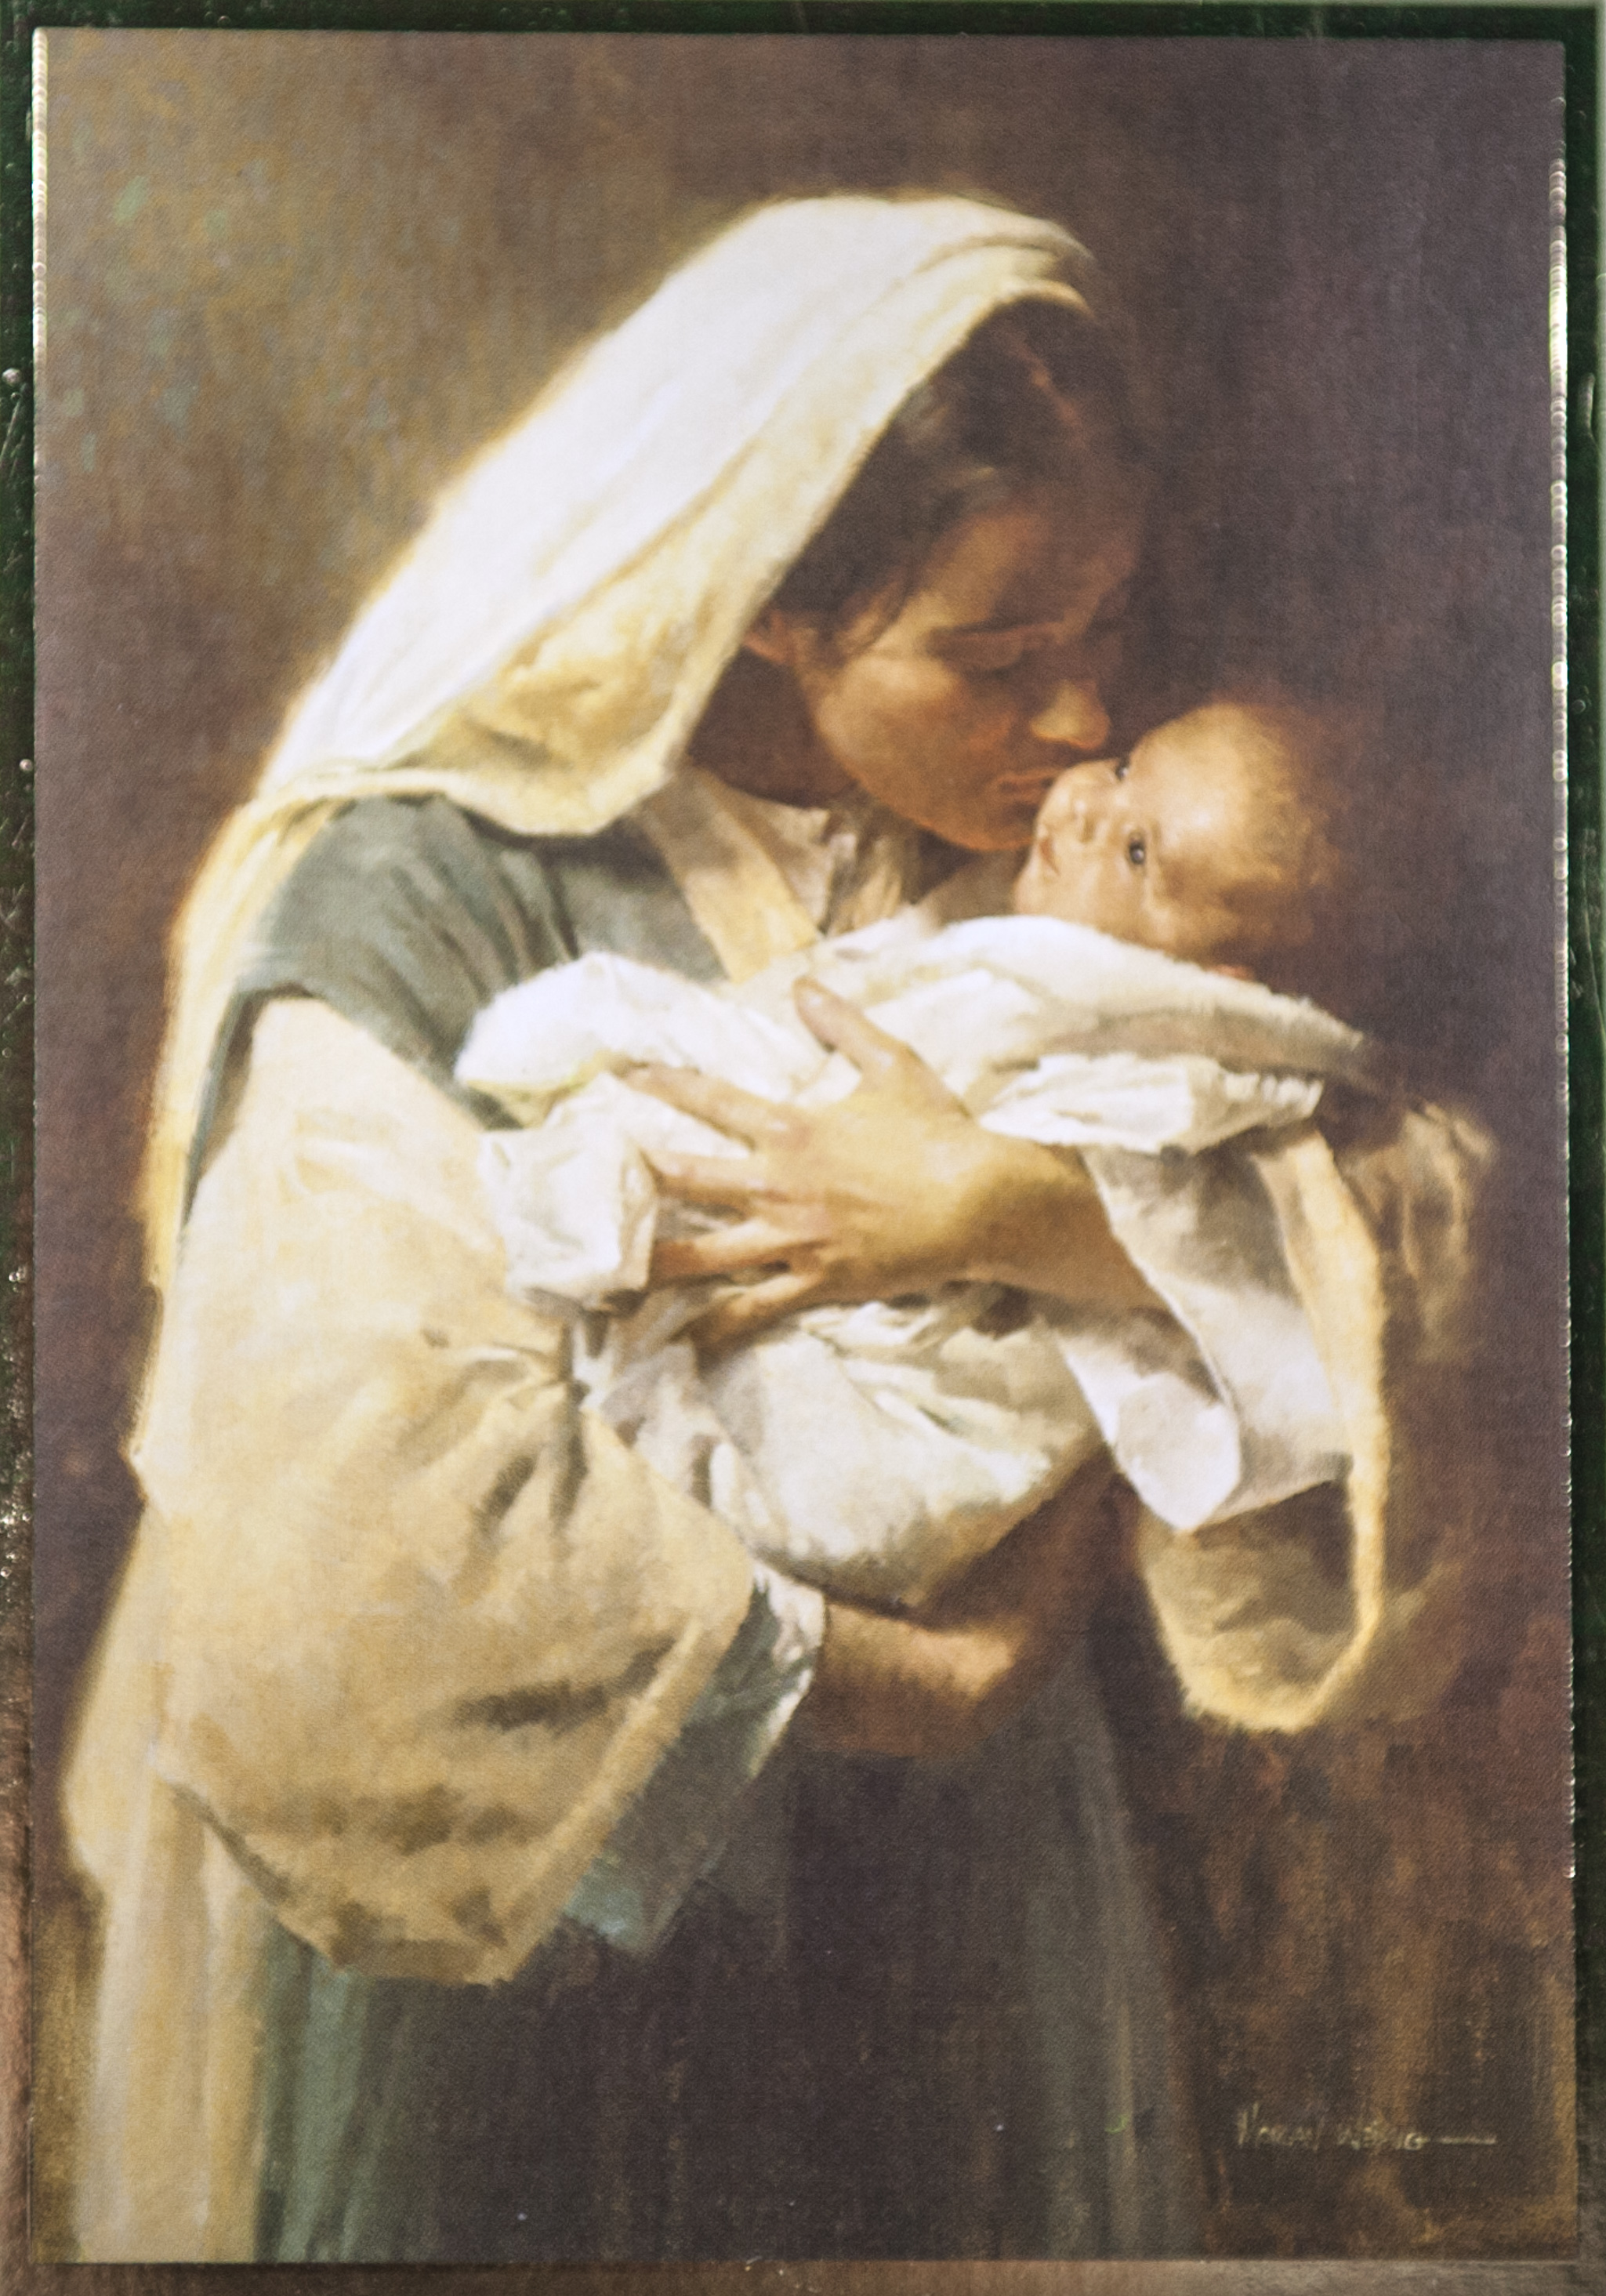 """BABY   Suggested donation: $10.00 Size: 5 x 7   This Mass card celebrates the birth of a baby. Cover features """"Kissing the Face of God."""""""